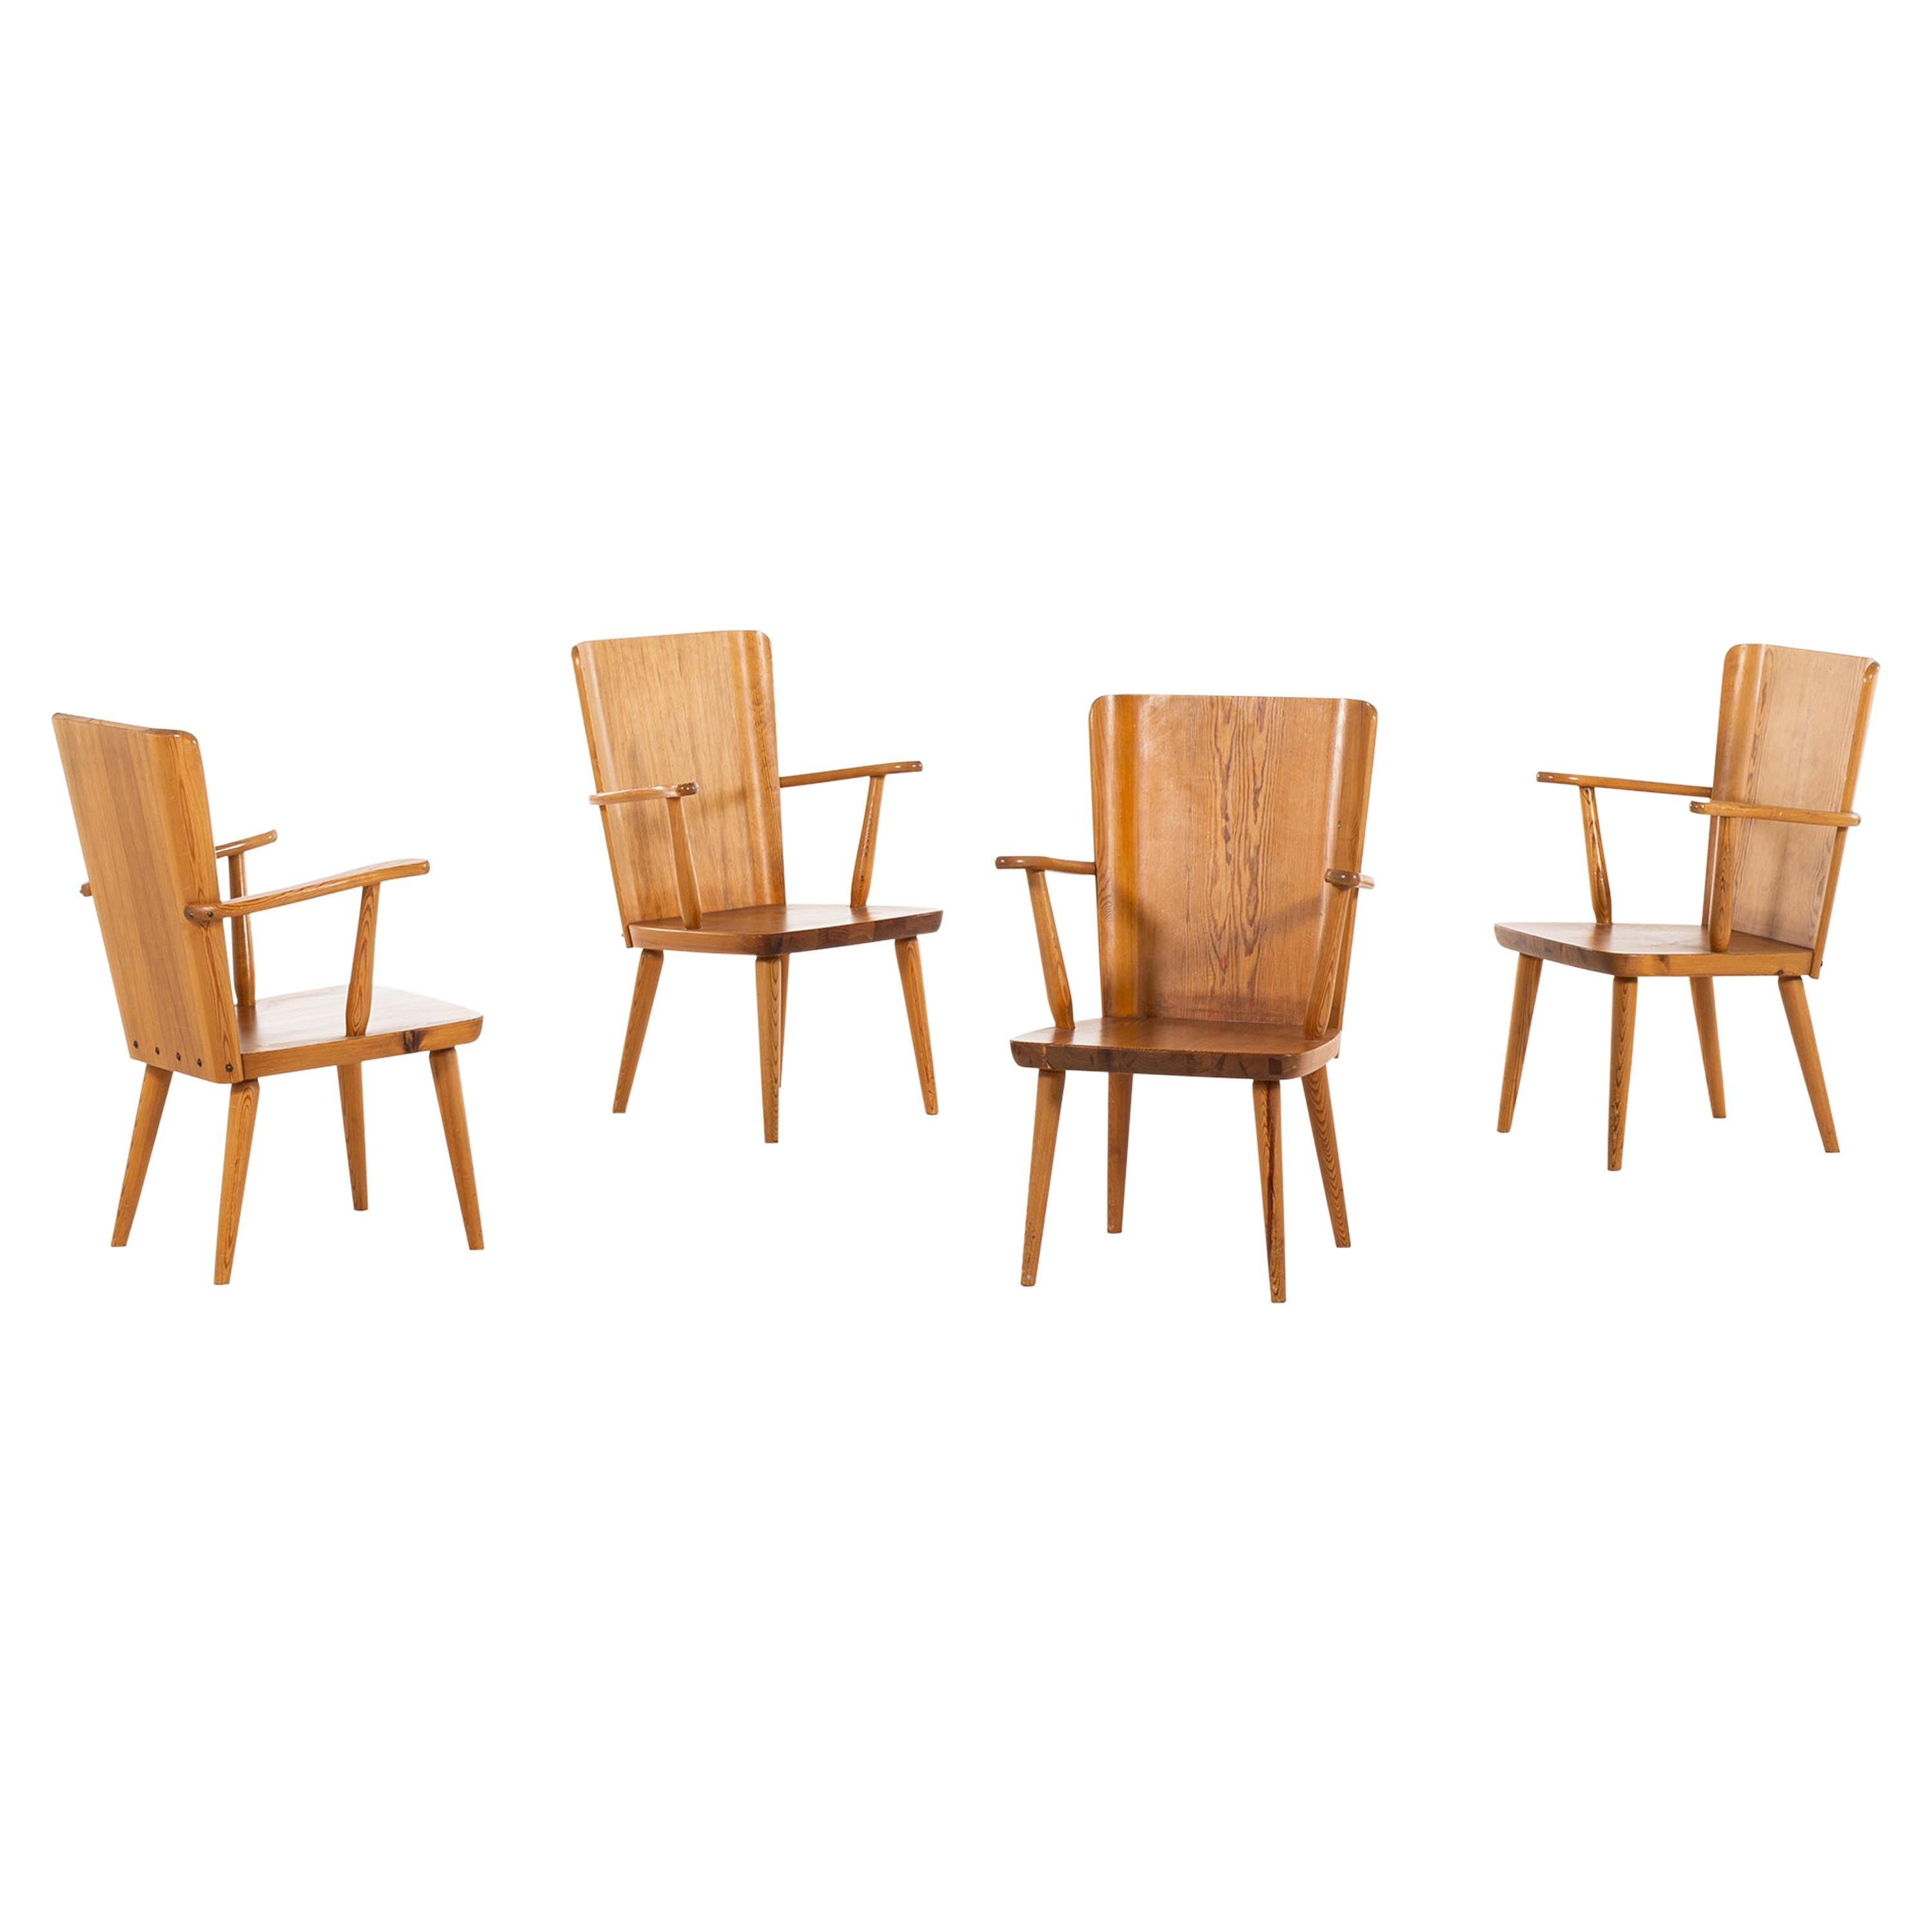 Göran Malmvall Armchairs in Pine Produced by Svensk Fur in Sweden